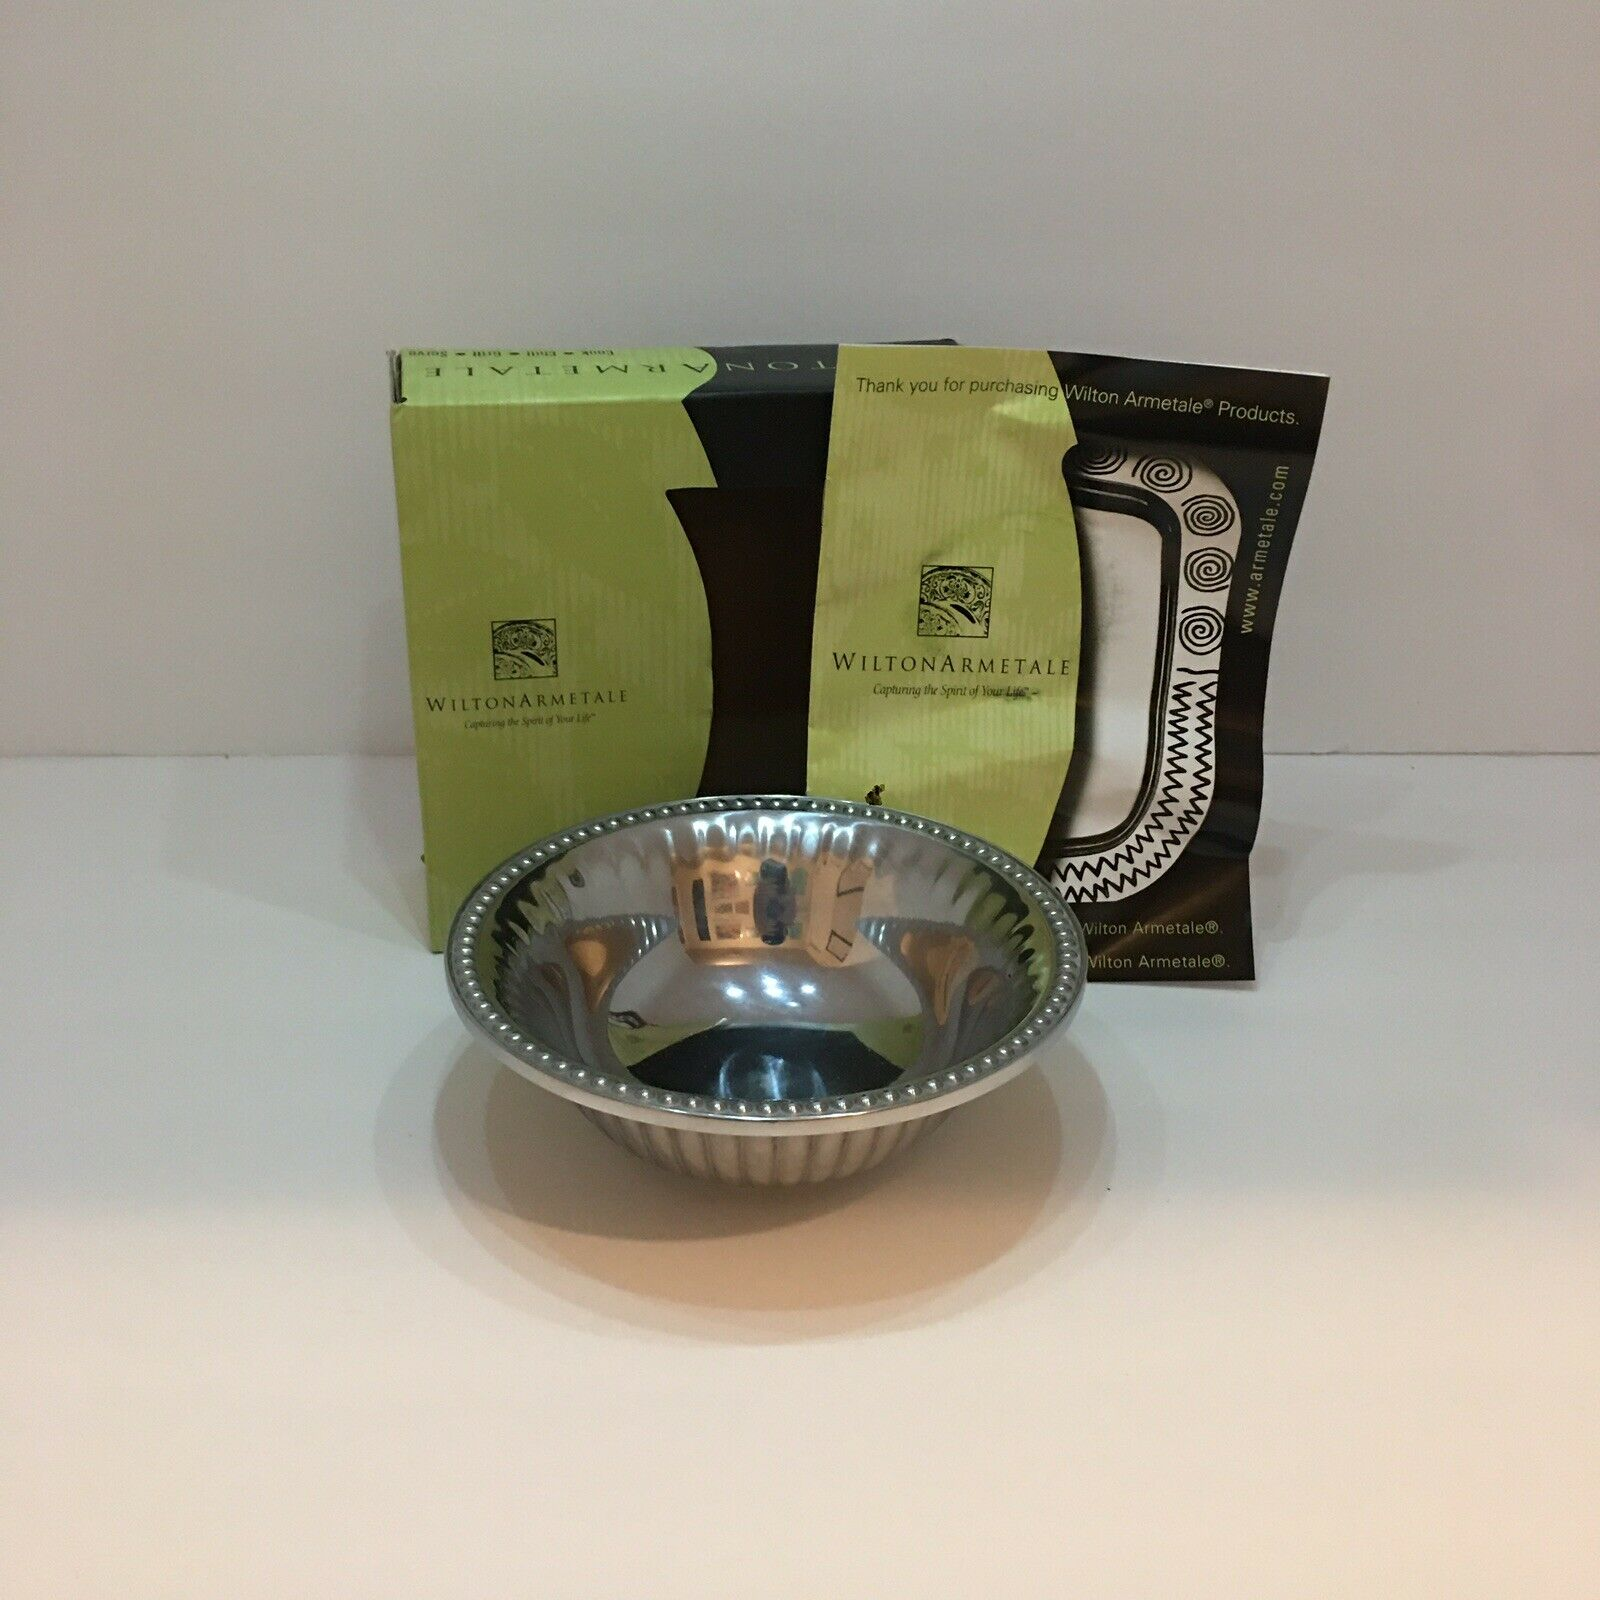 Wilton Armetale Flutes And Pearls 11 Cake Stand For Sale Online Ebay